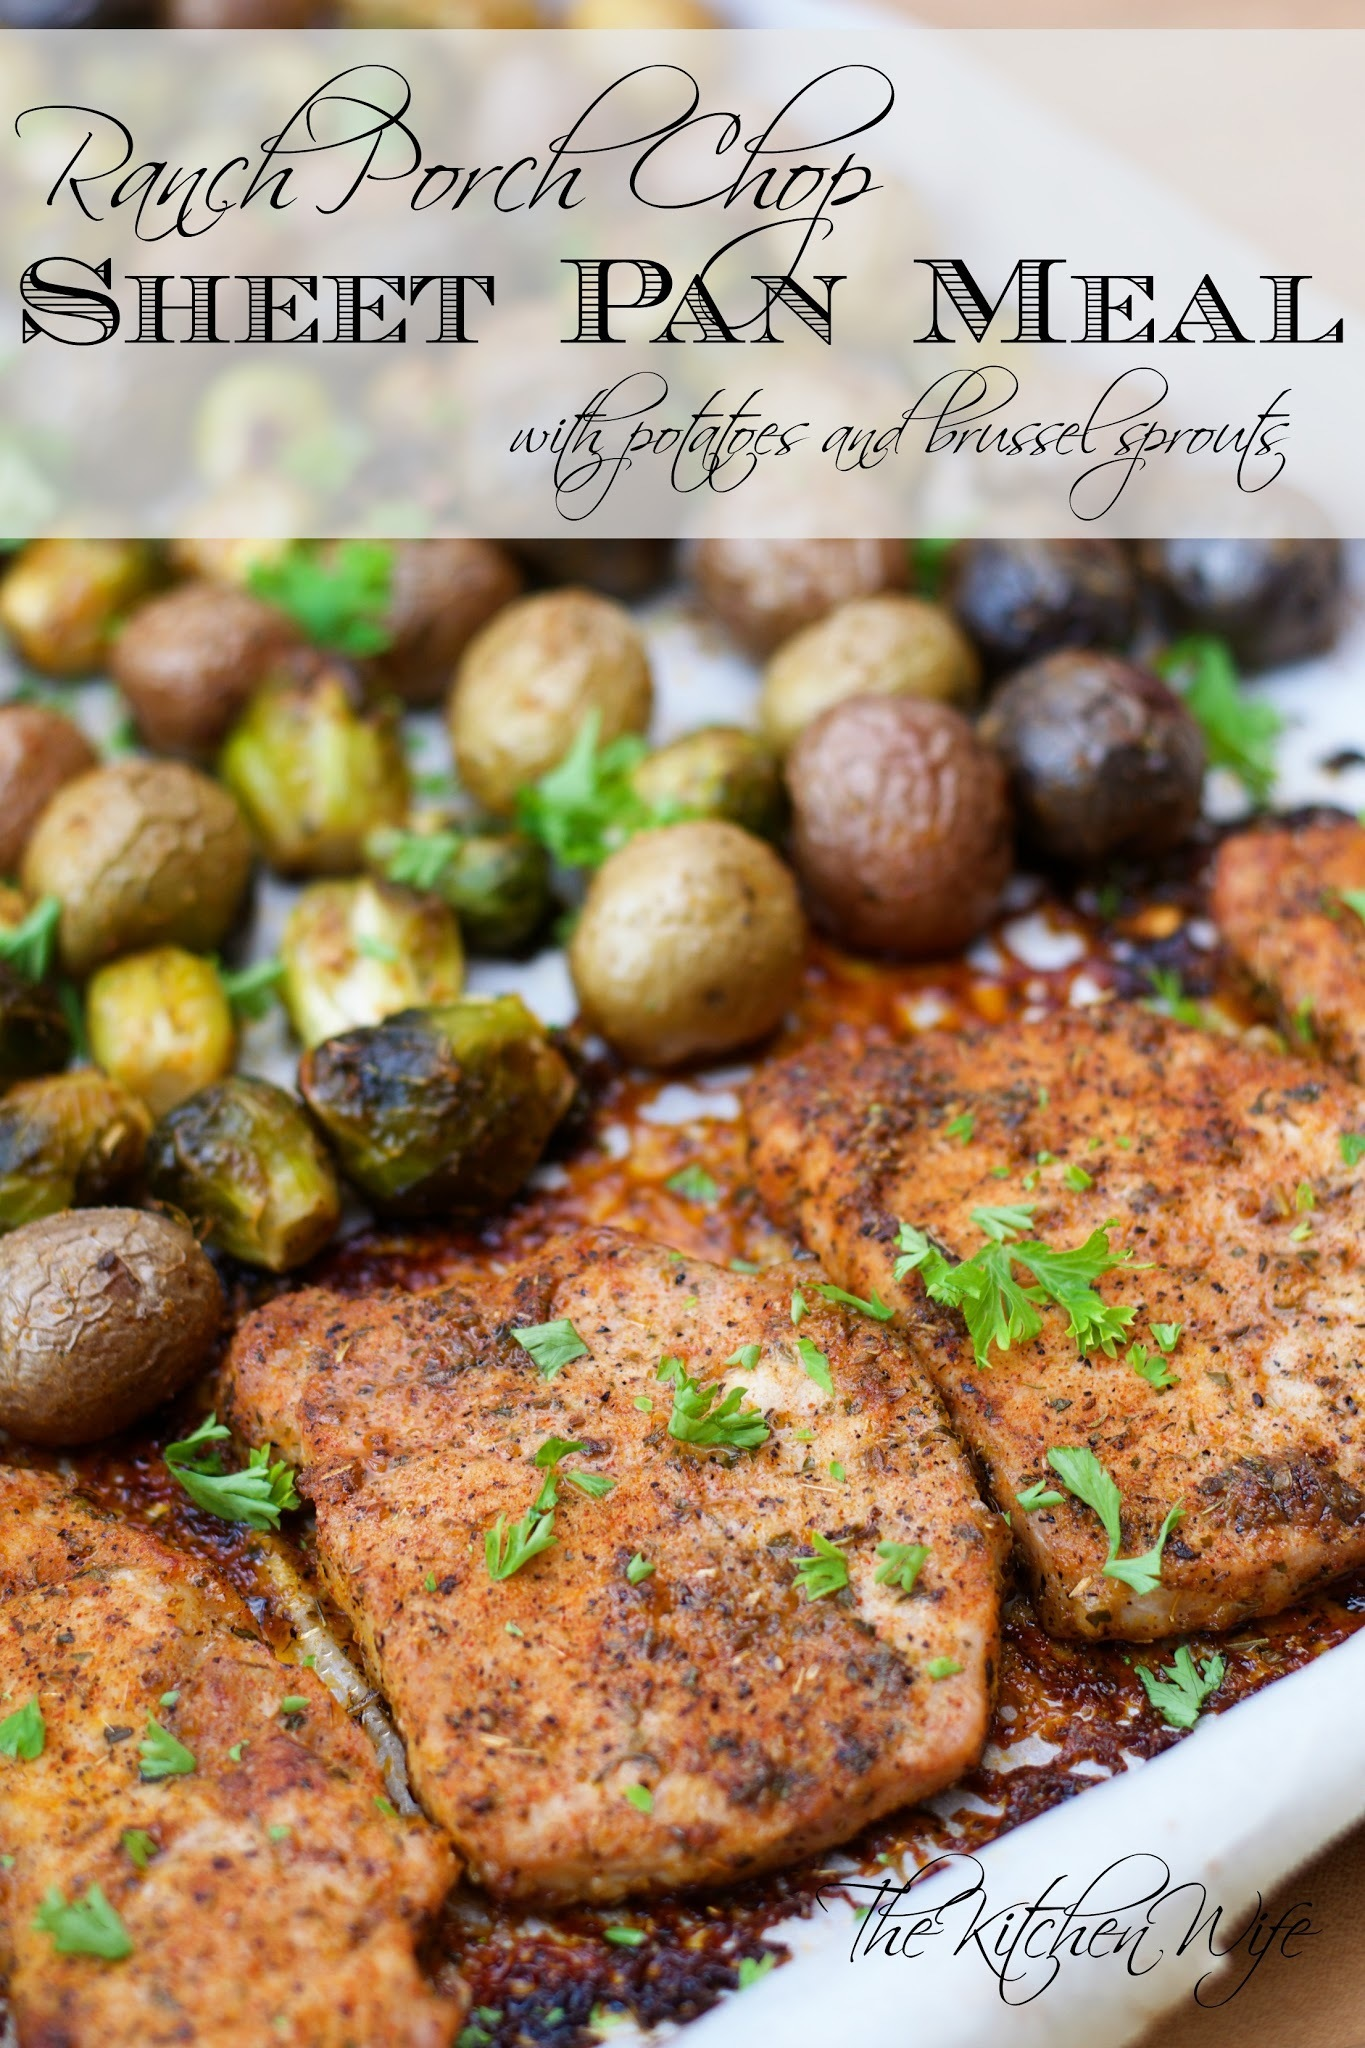 Ranch Pork Chop Sheet Pan Meal with Potatoes and Brussel Sprouts